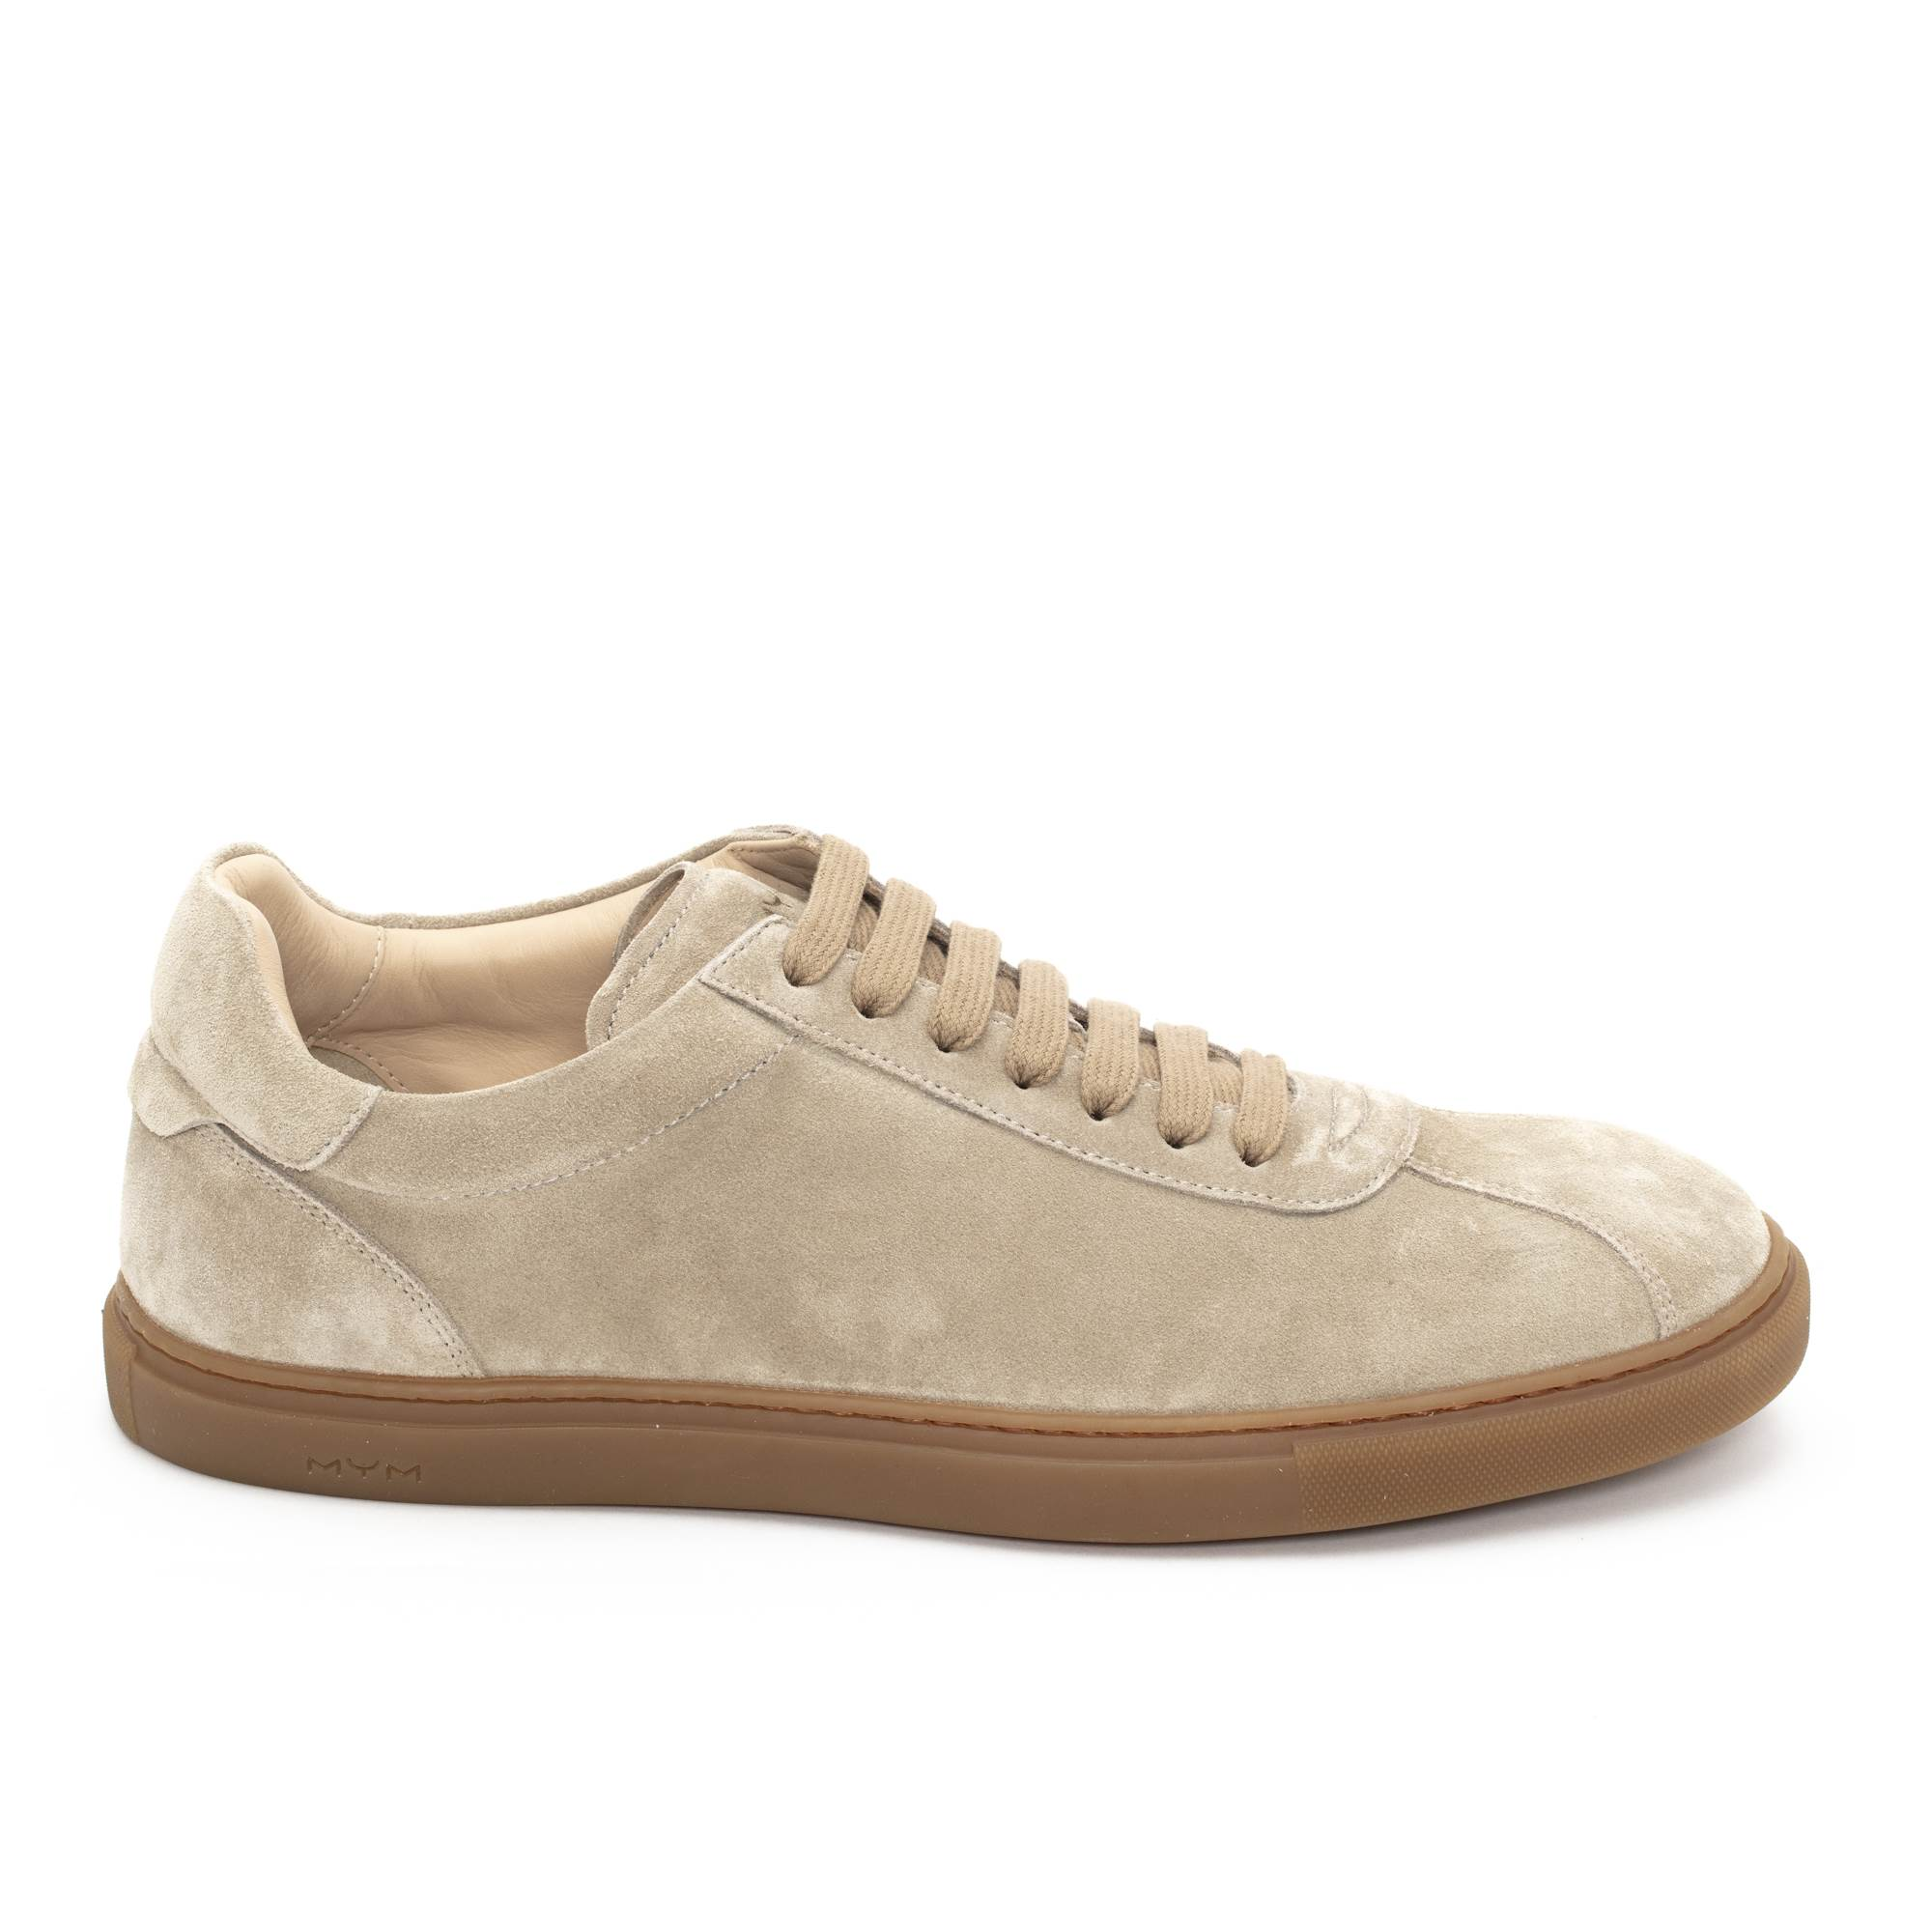 MYM ITALIA 453 YOGURT Shoes Man MYM ITALIA ROVER CITY